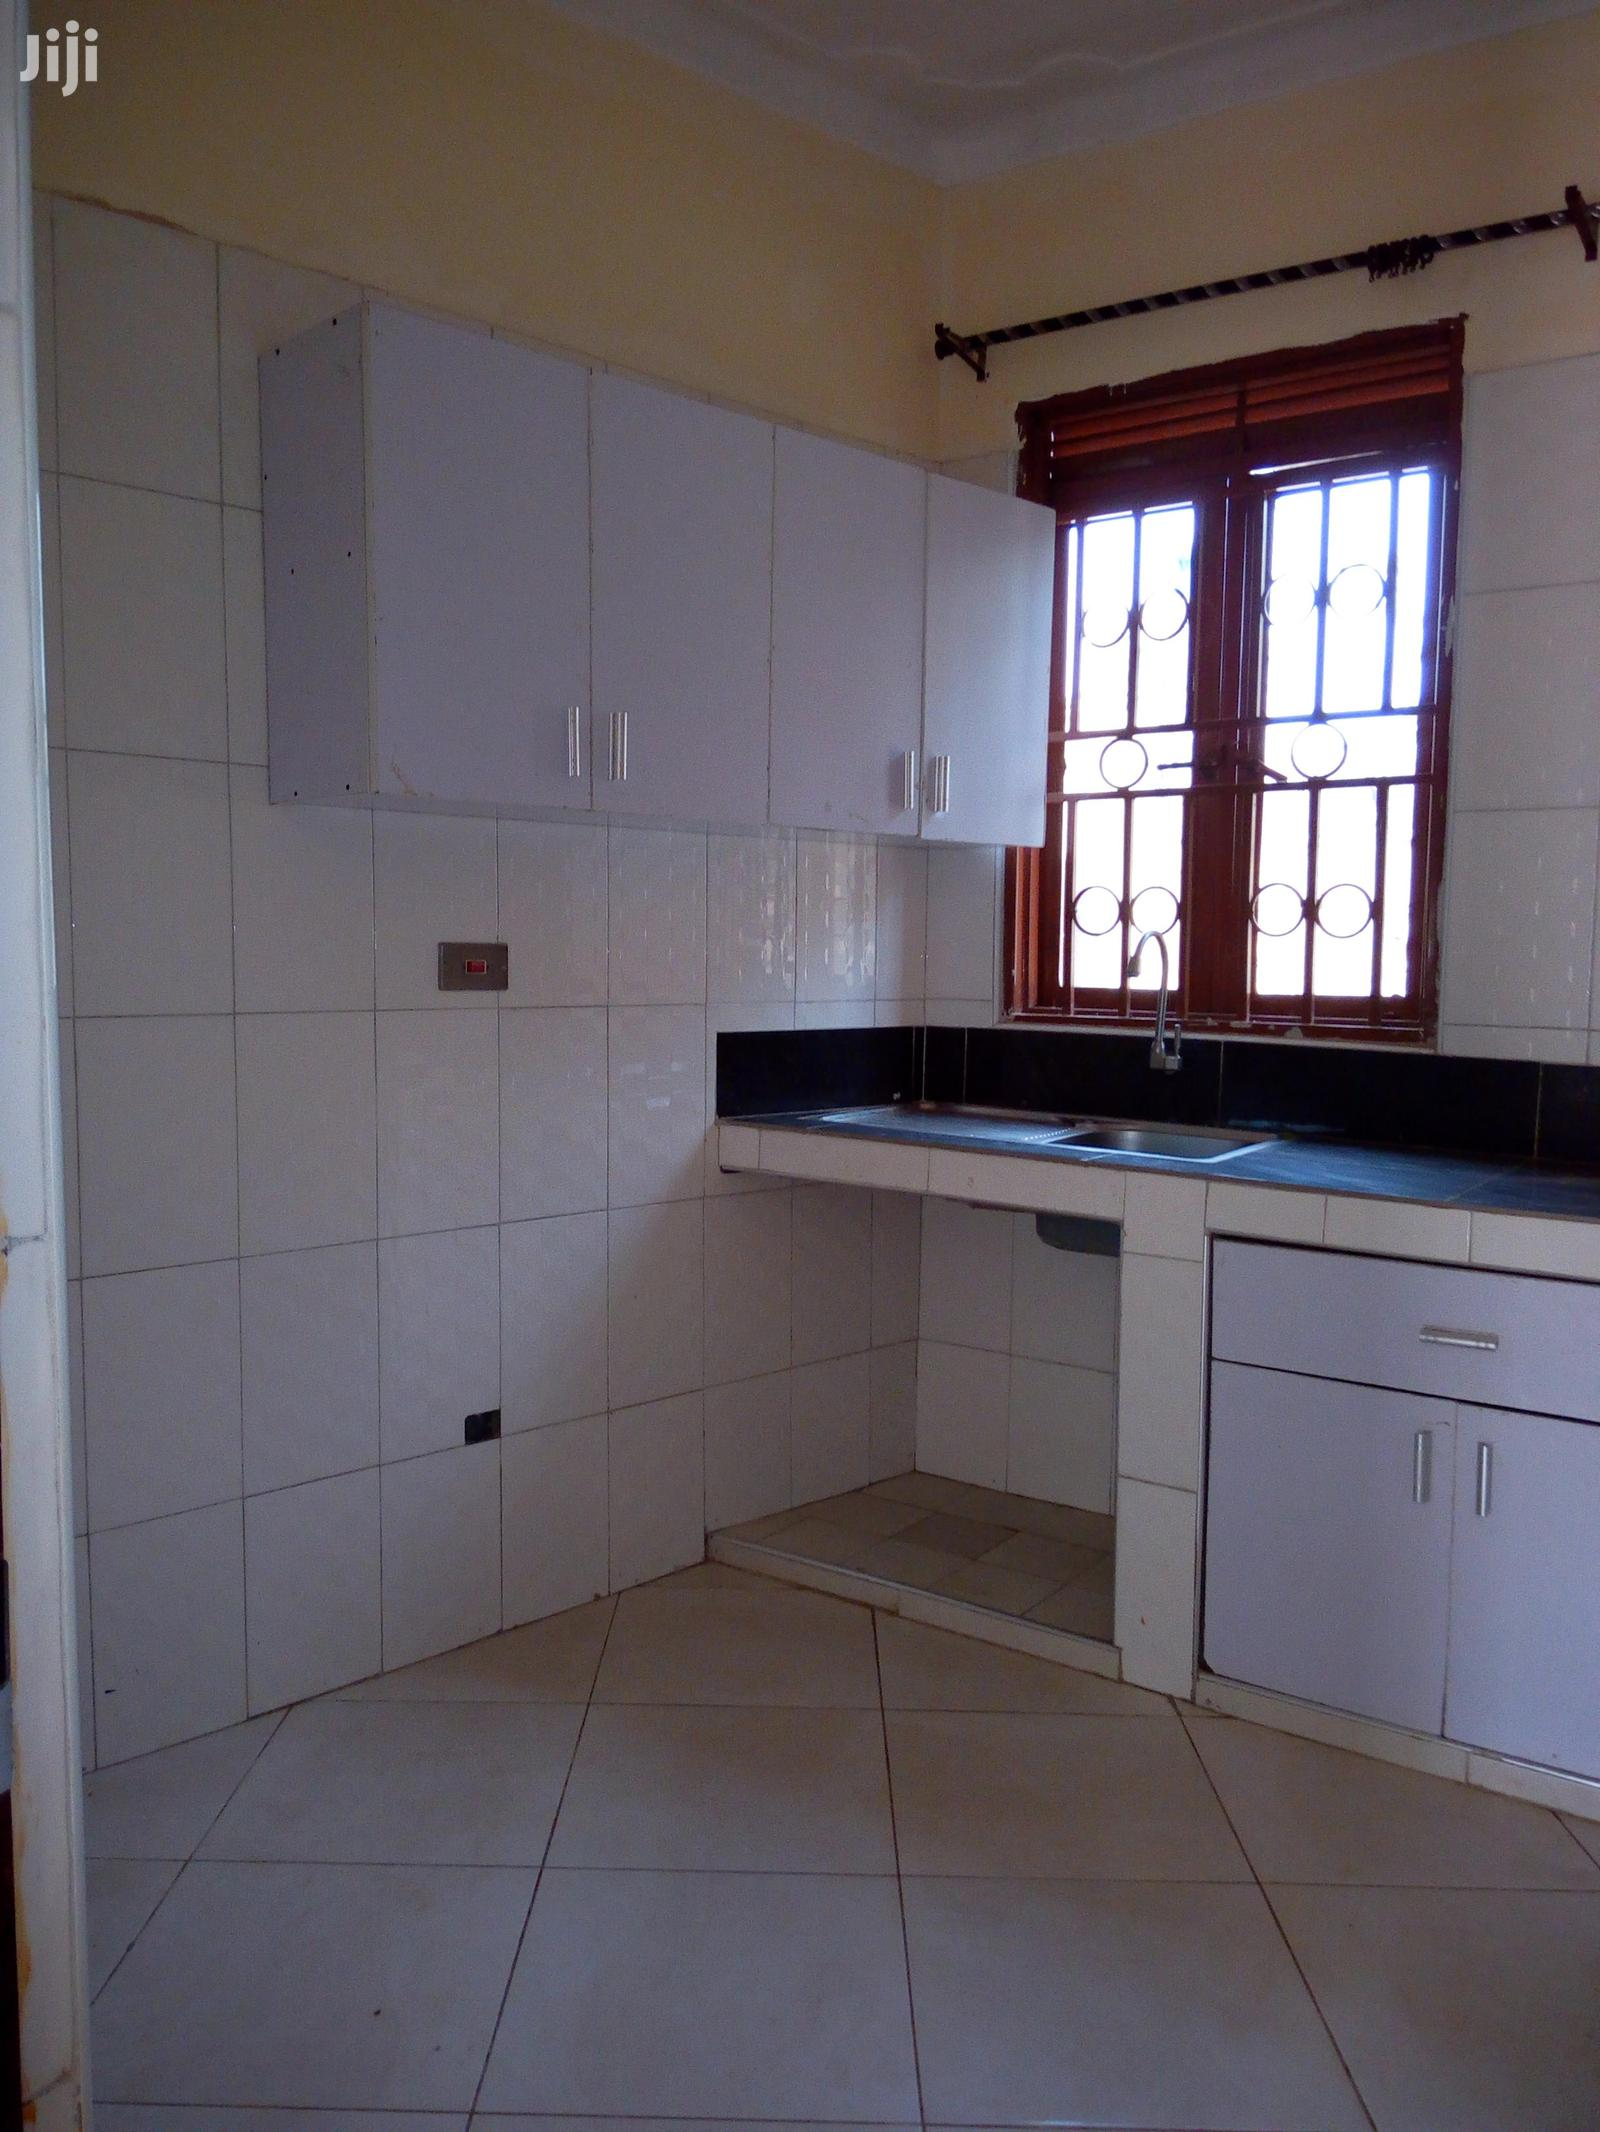 Naalya Two Bedroom Two Toilets House For Rent | Houses & Apartments For Rent for sale in Kampala, Central Region, Uganda